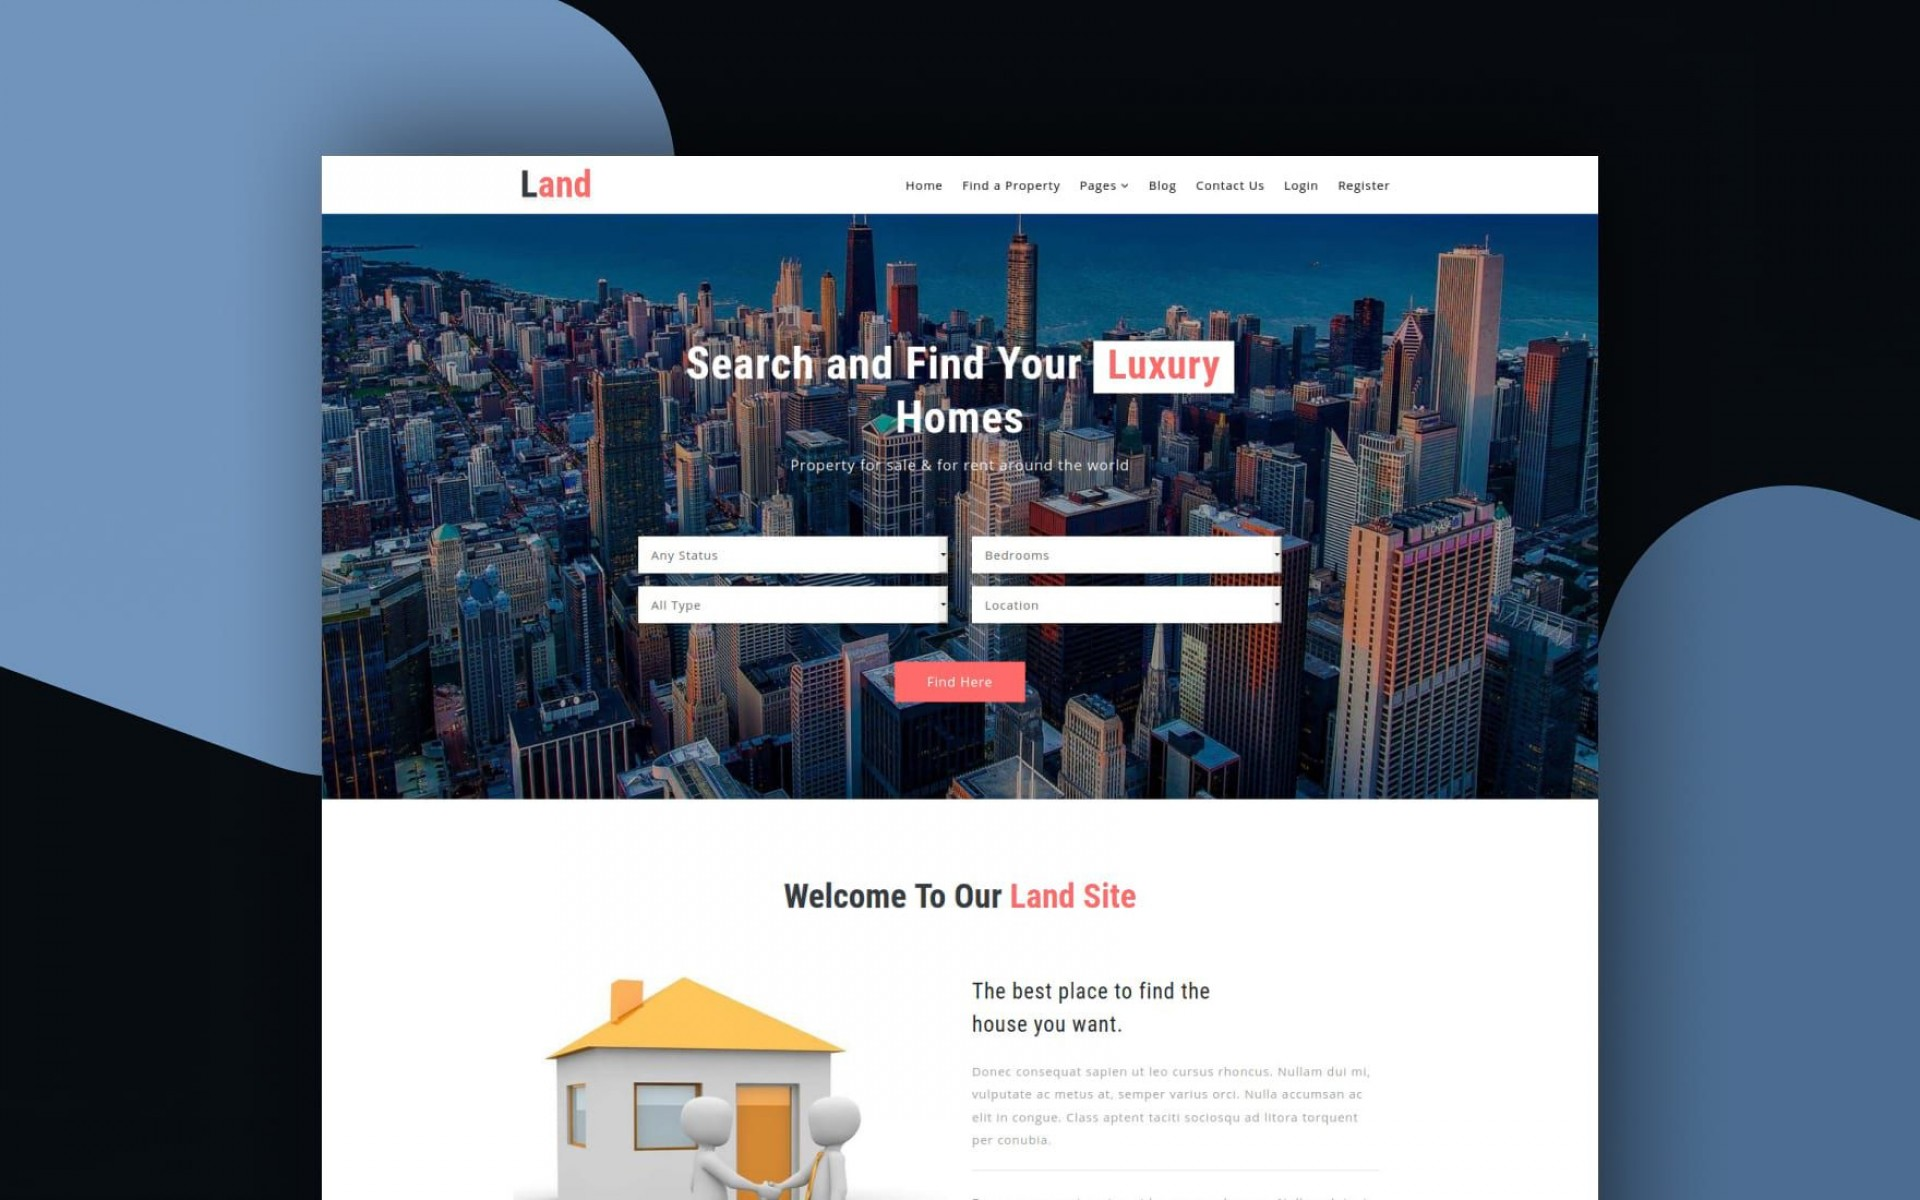 011 Formidable Real Estate Website Template High Definition  Templates Bootstrap Free Html5 Best Wordpres1920